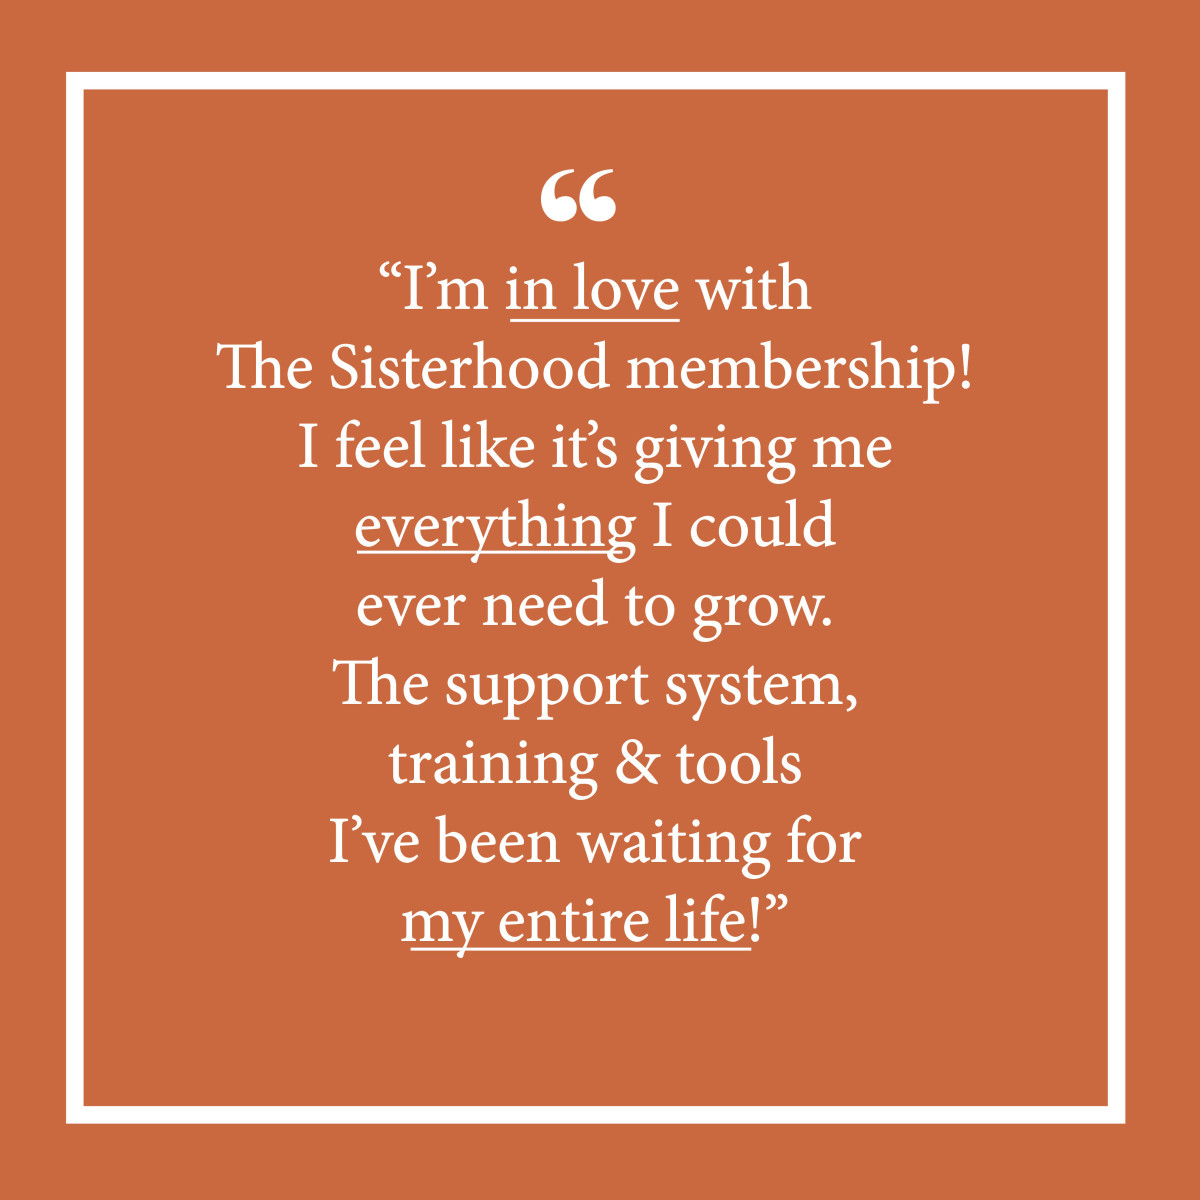 The Sisterhood_Testimonial for membership V3